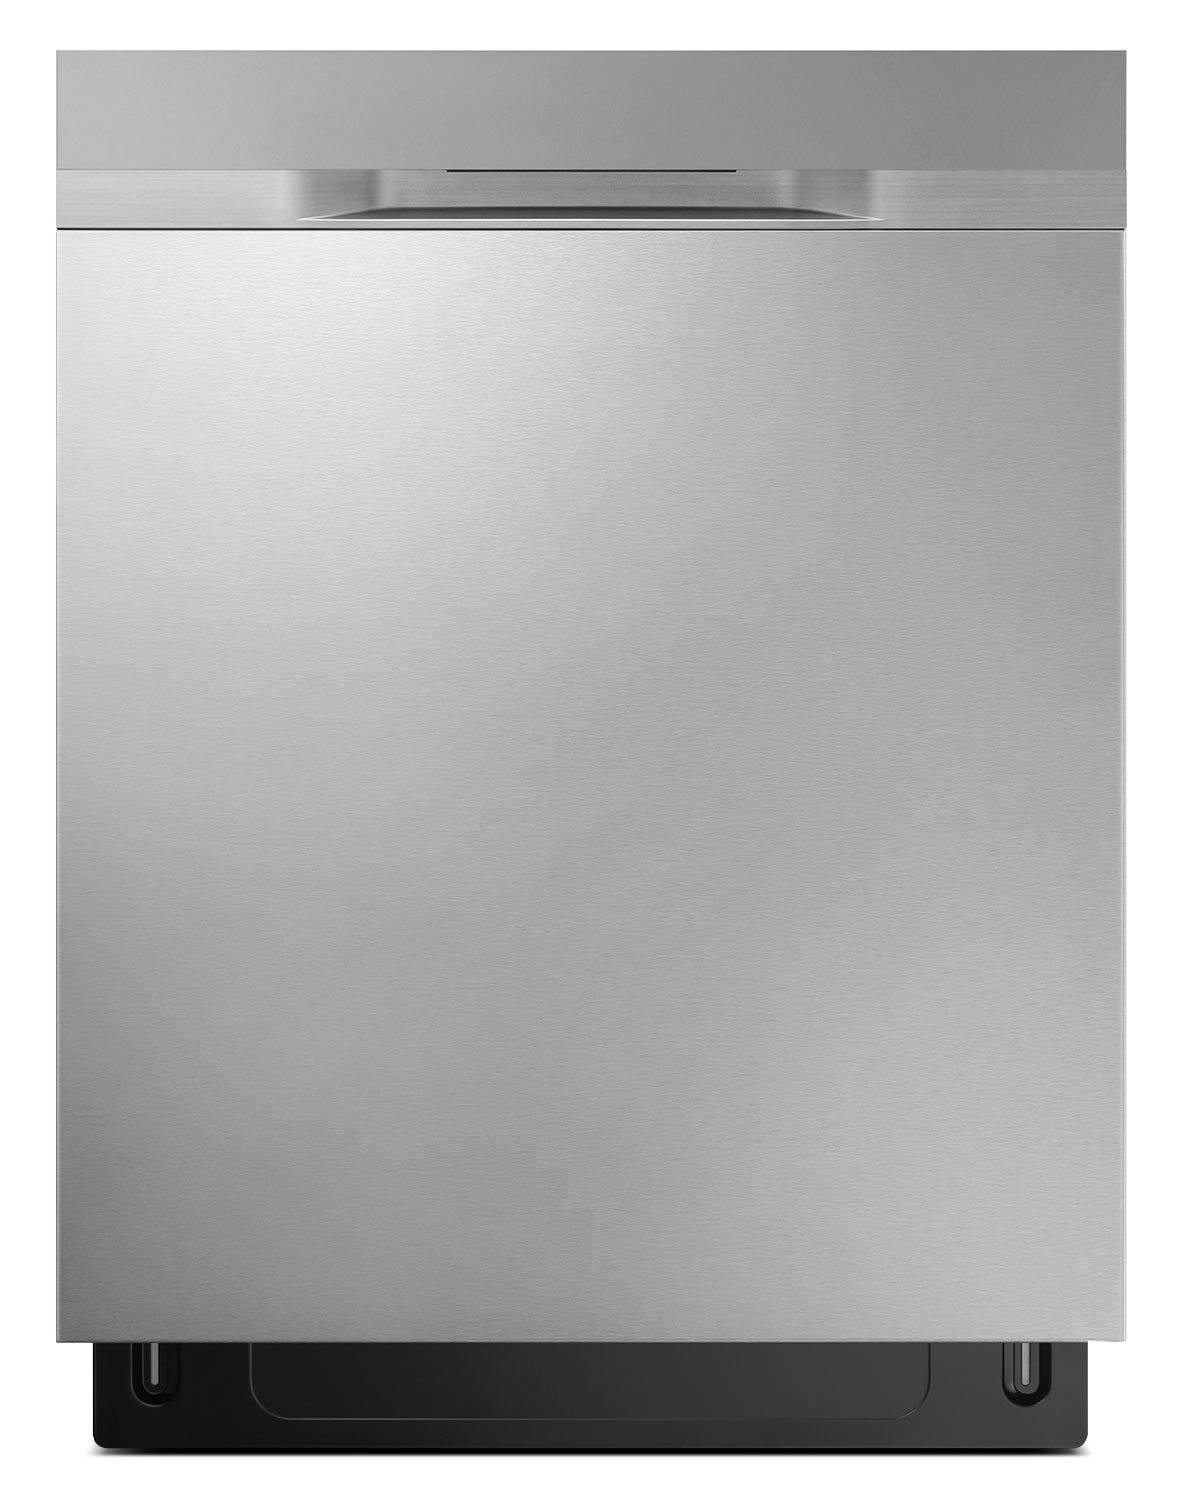 Samsung Built-In Dishwasher with Auto-Open Drying – DW80K5050US/AC